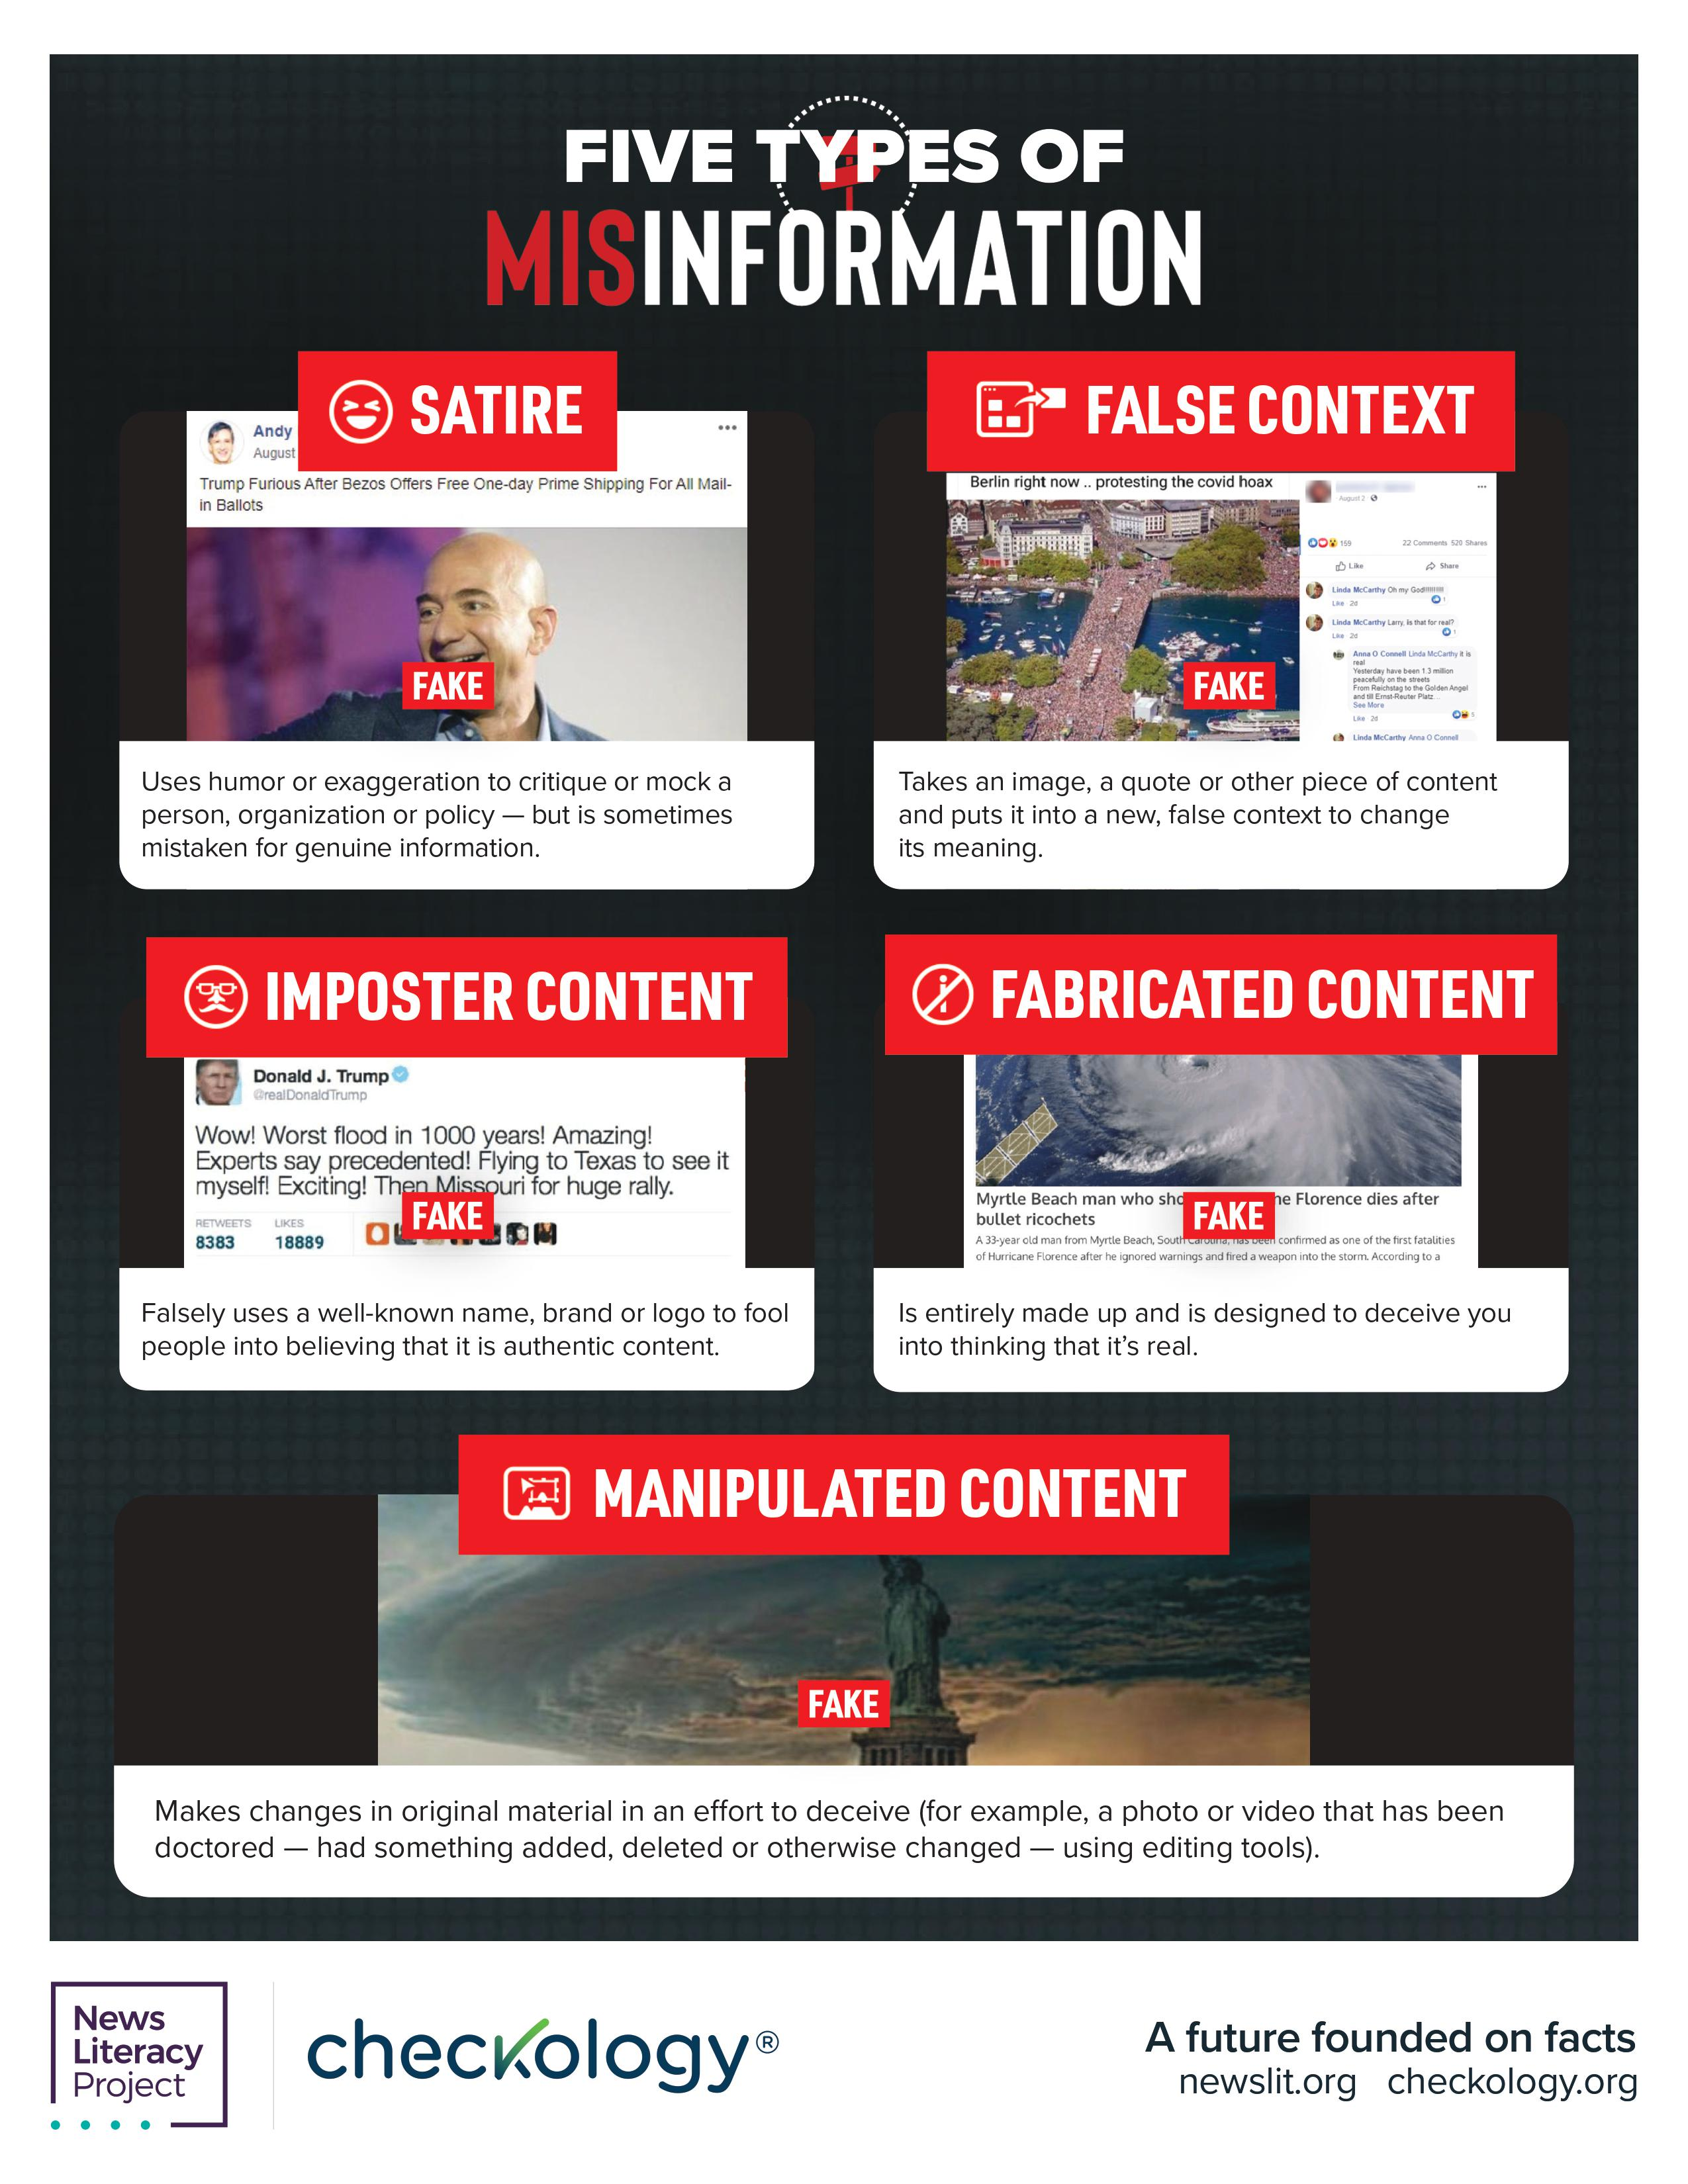 Five Types of Misinformation. Click for more information.